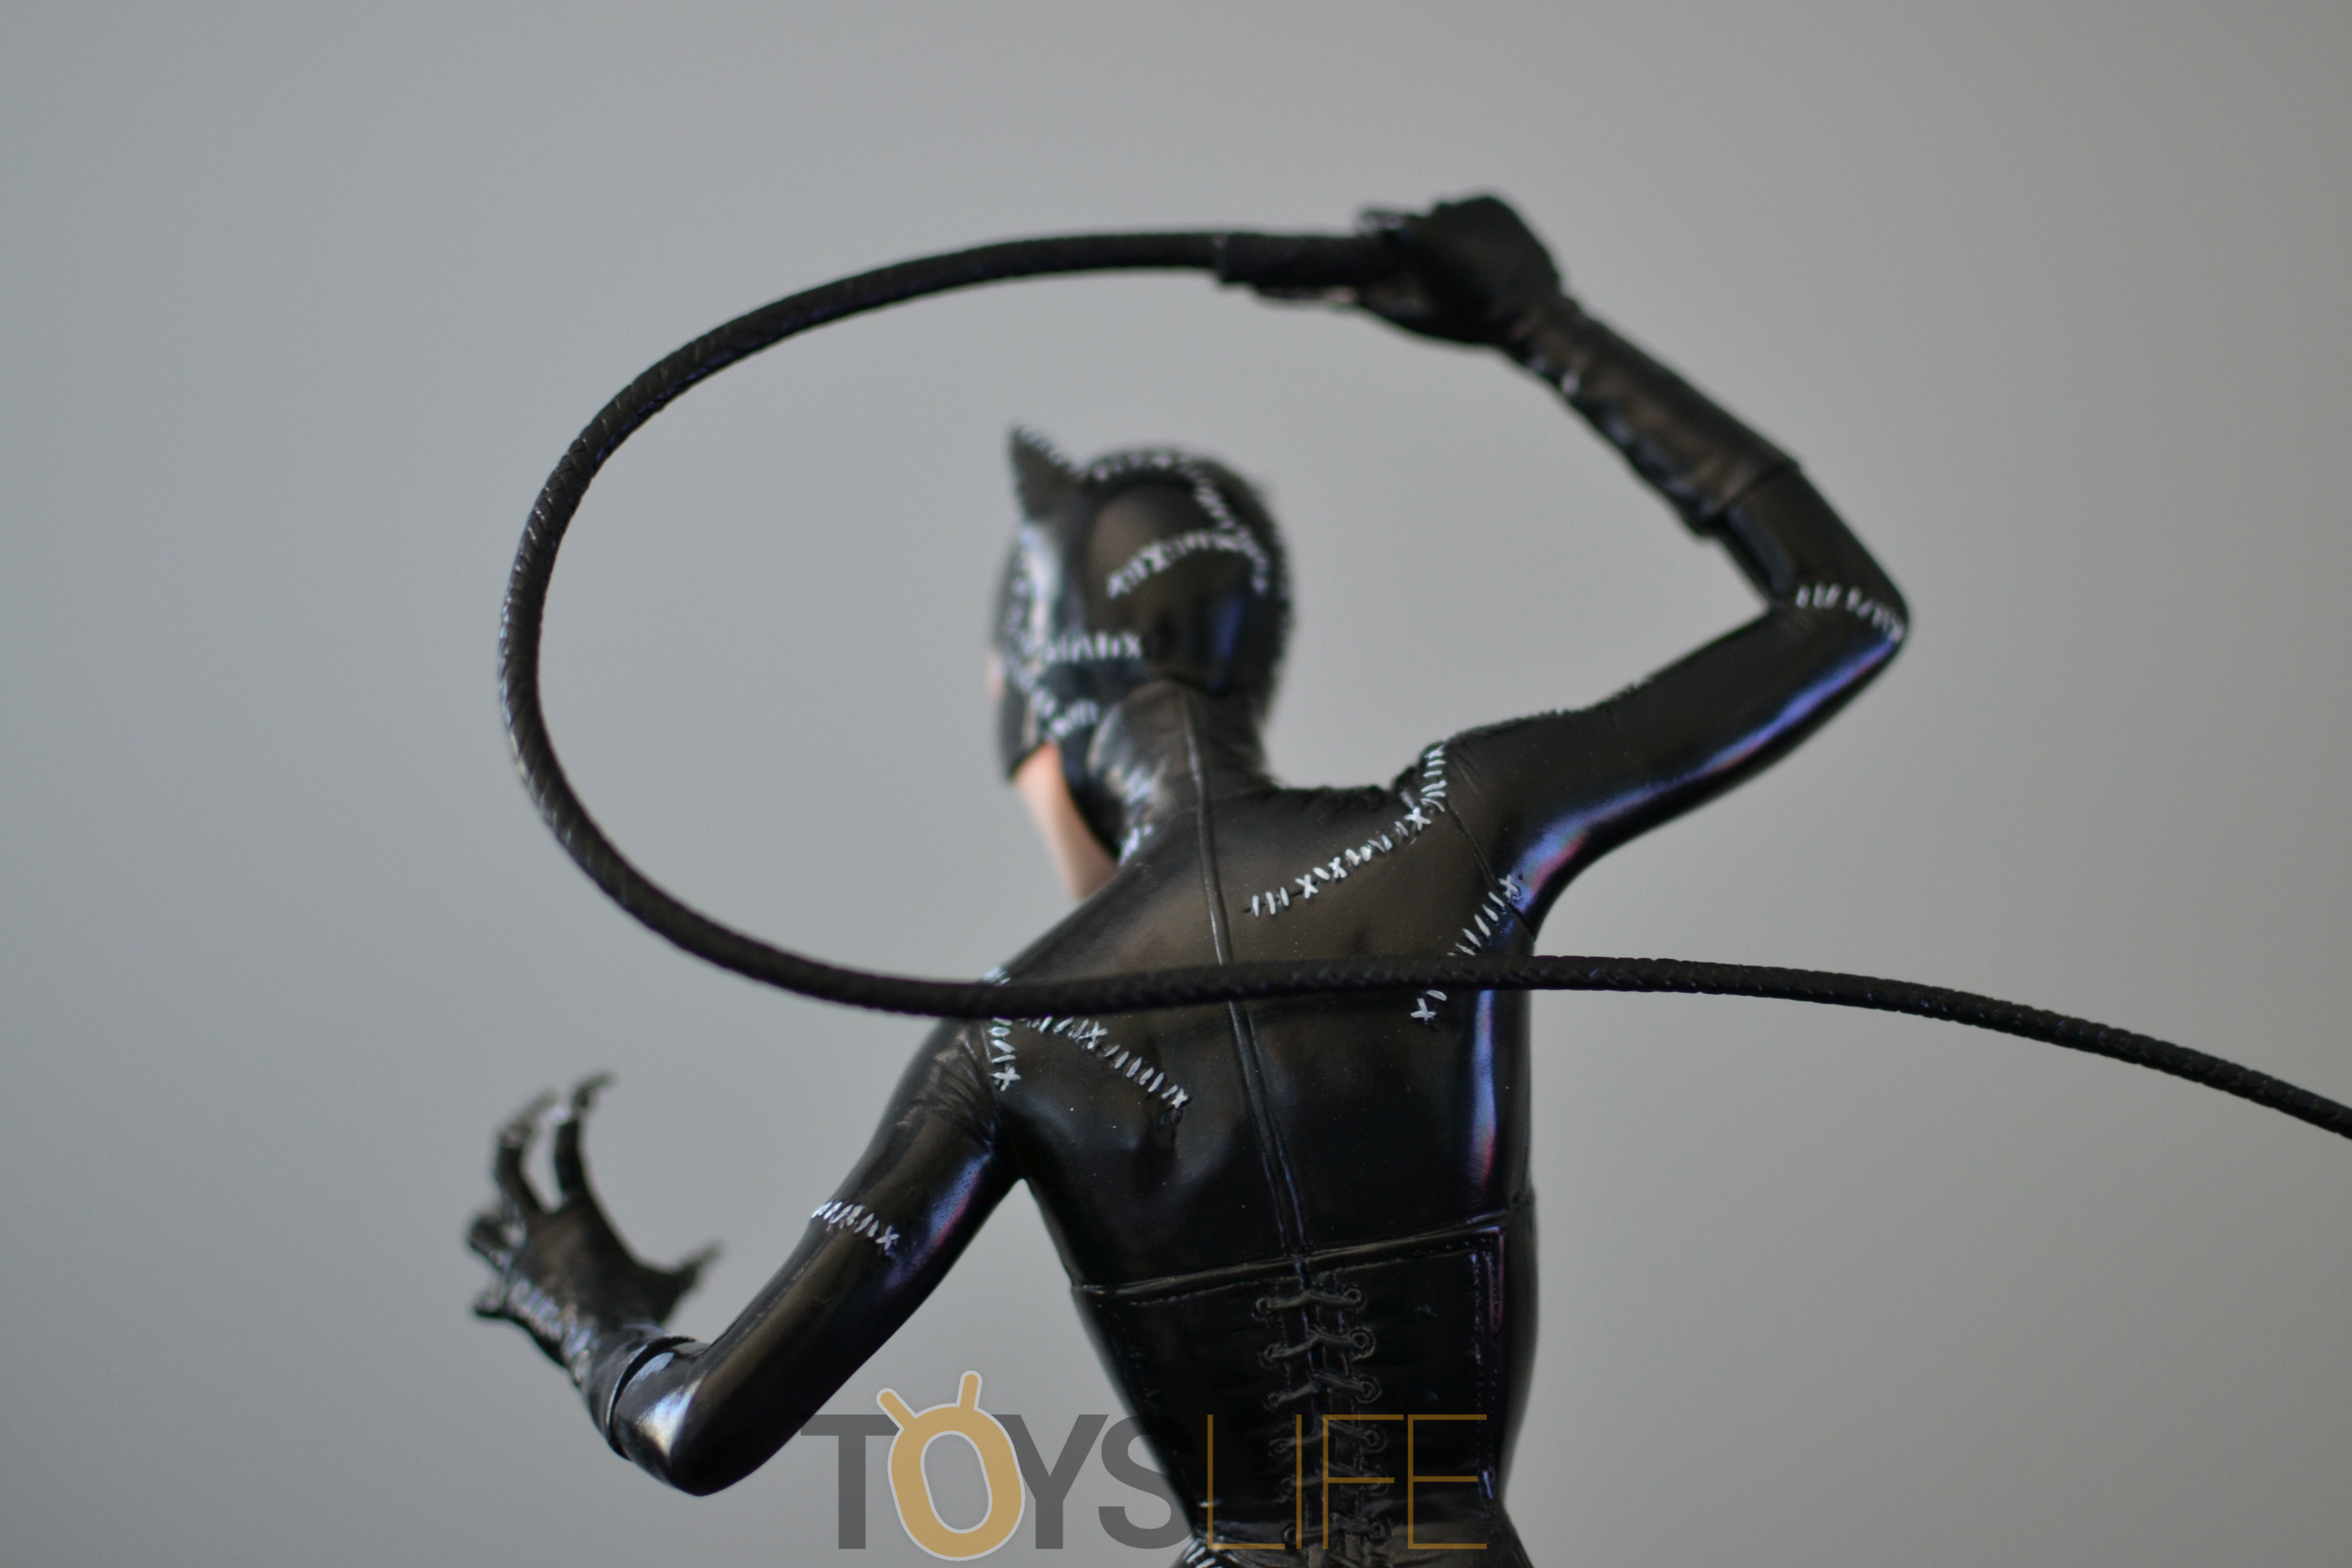 tweeterhead-catwoman-michelle-pfeiffer-maquette-toyslife-review-24